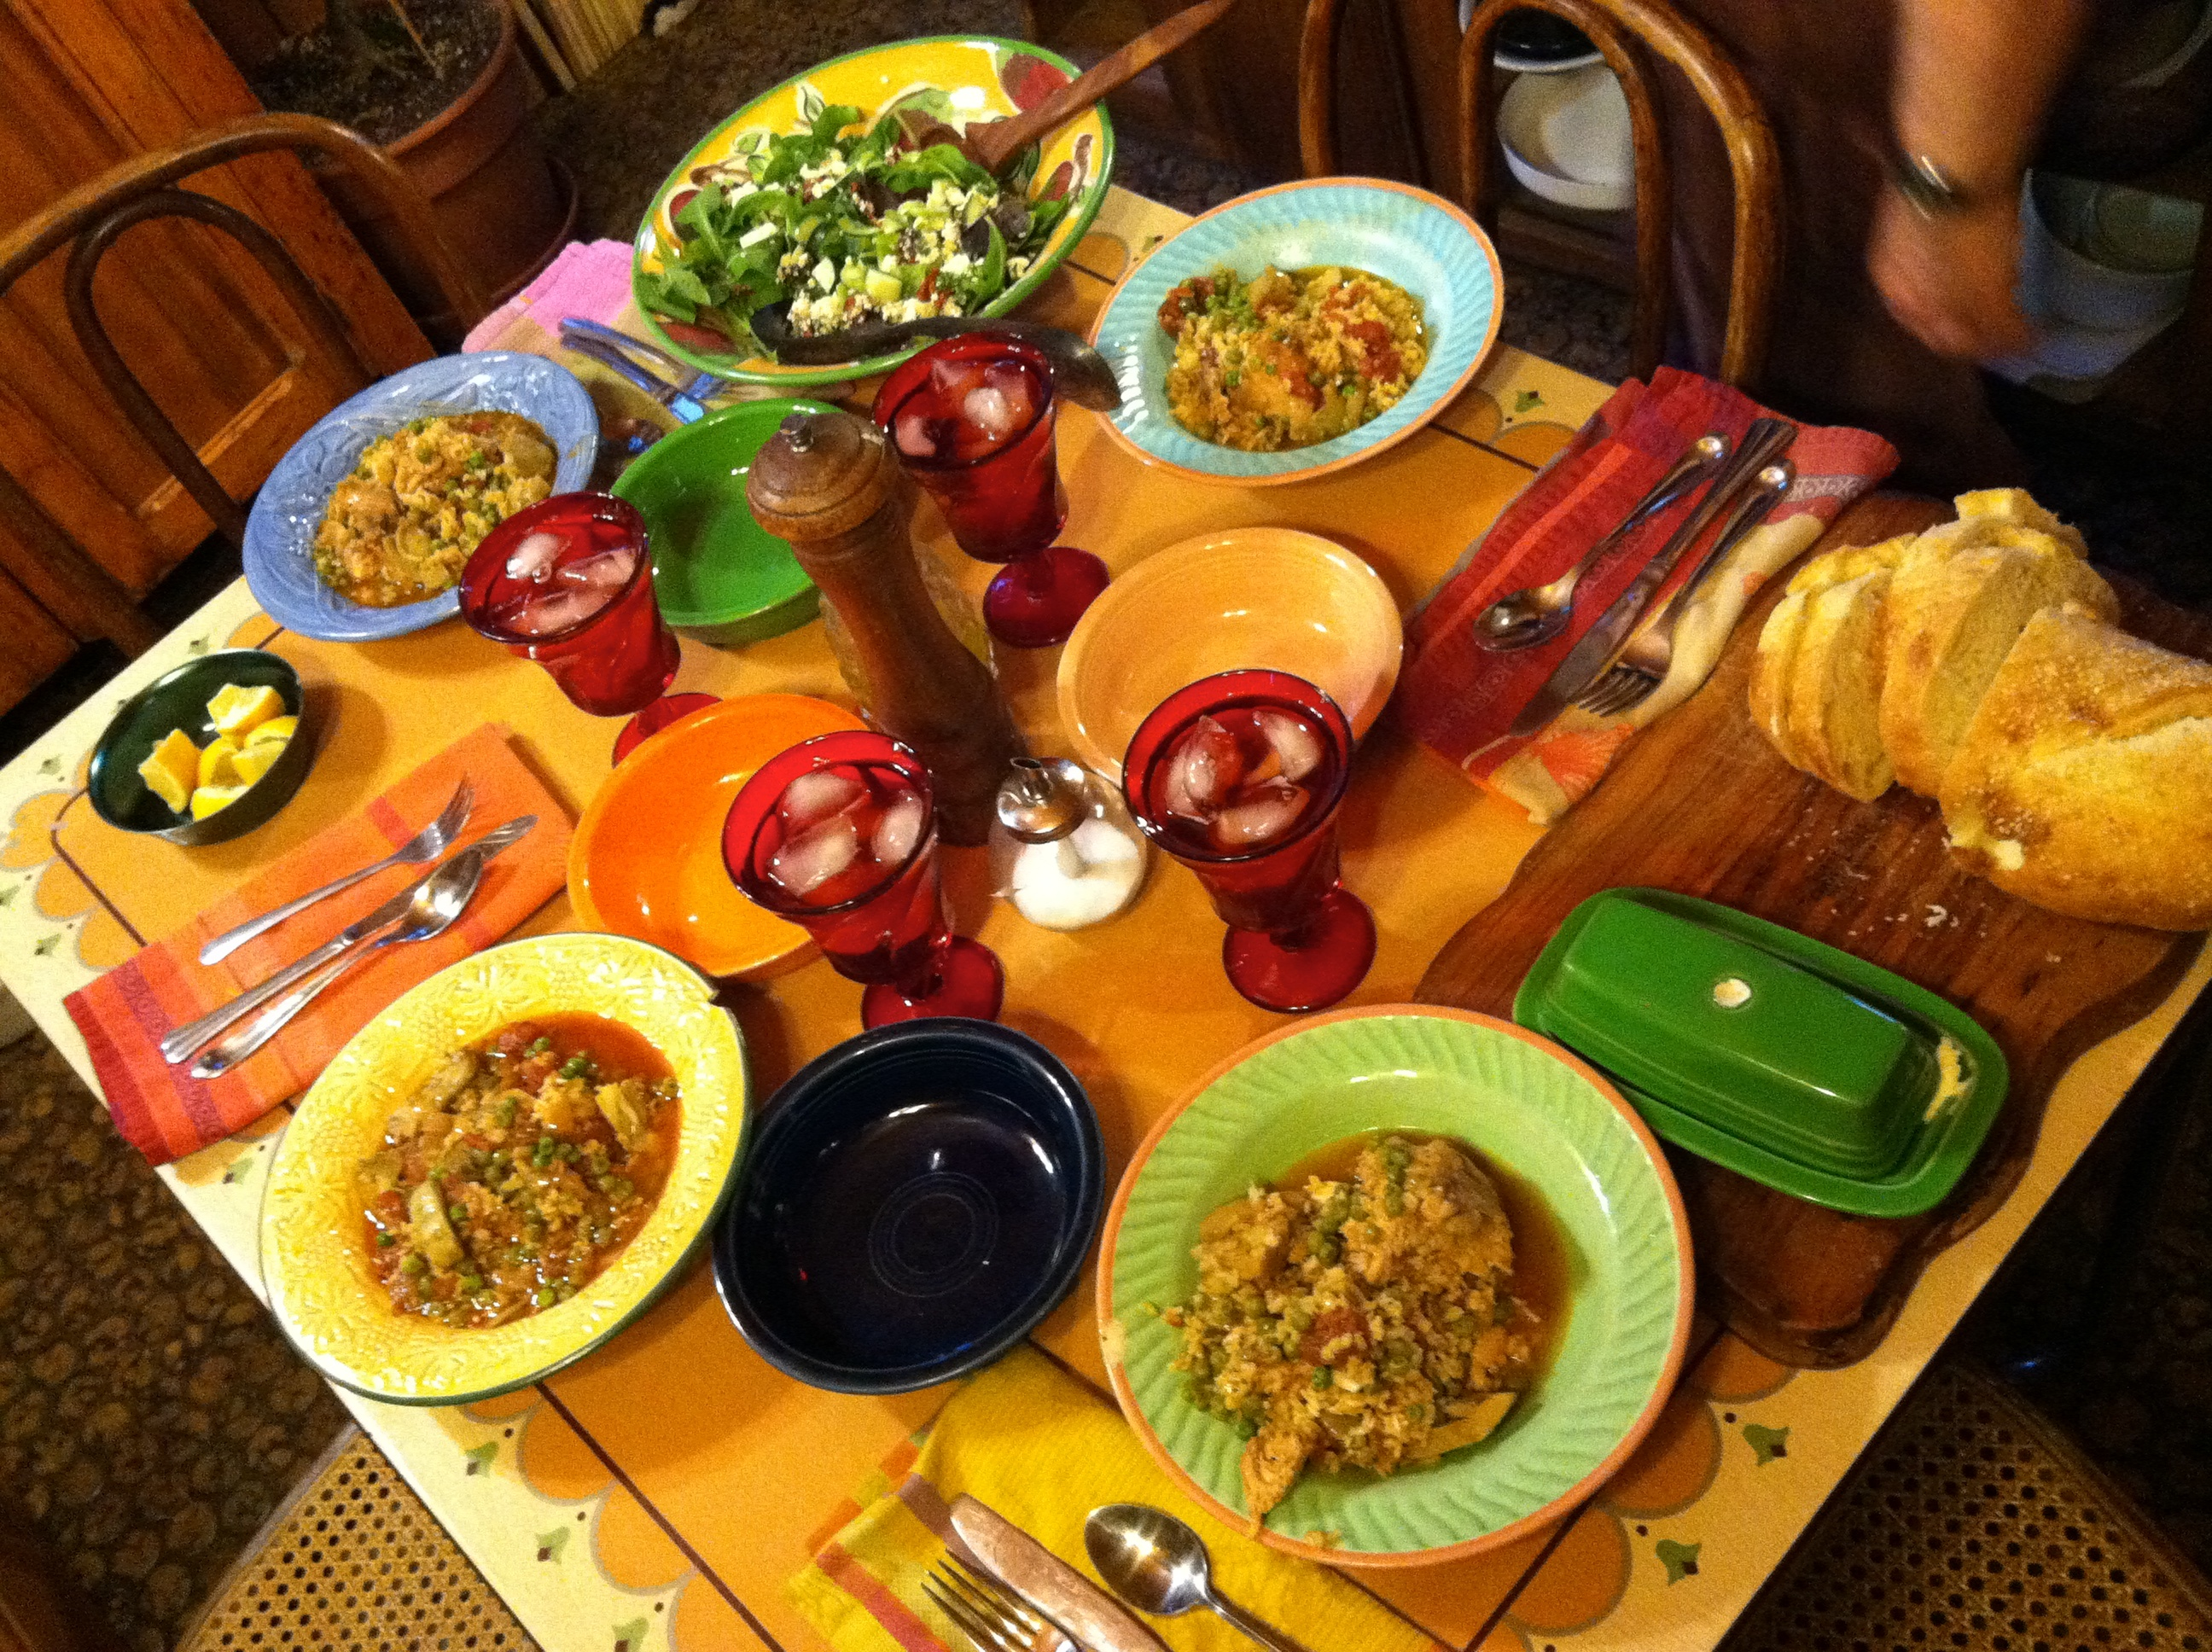 Dinner table with mexican food - Mexican Chicken Stew Spring Mix Salad With Cucumbers And Feta Greek Salad Dressing Made With Olive Oil And Lemon Juice Bread And Amish Butter